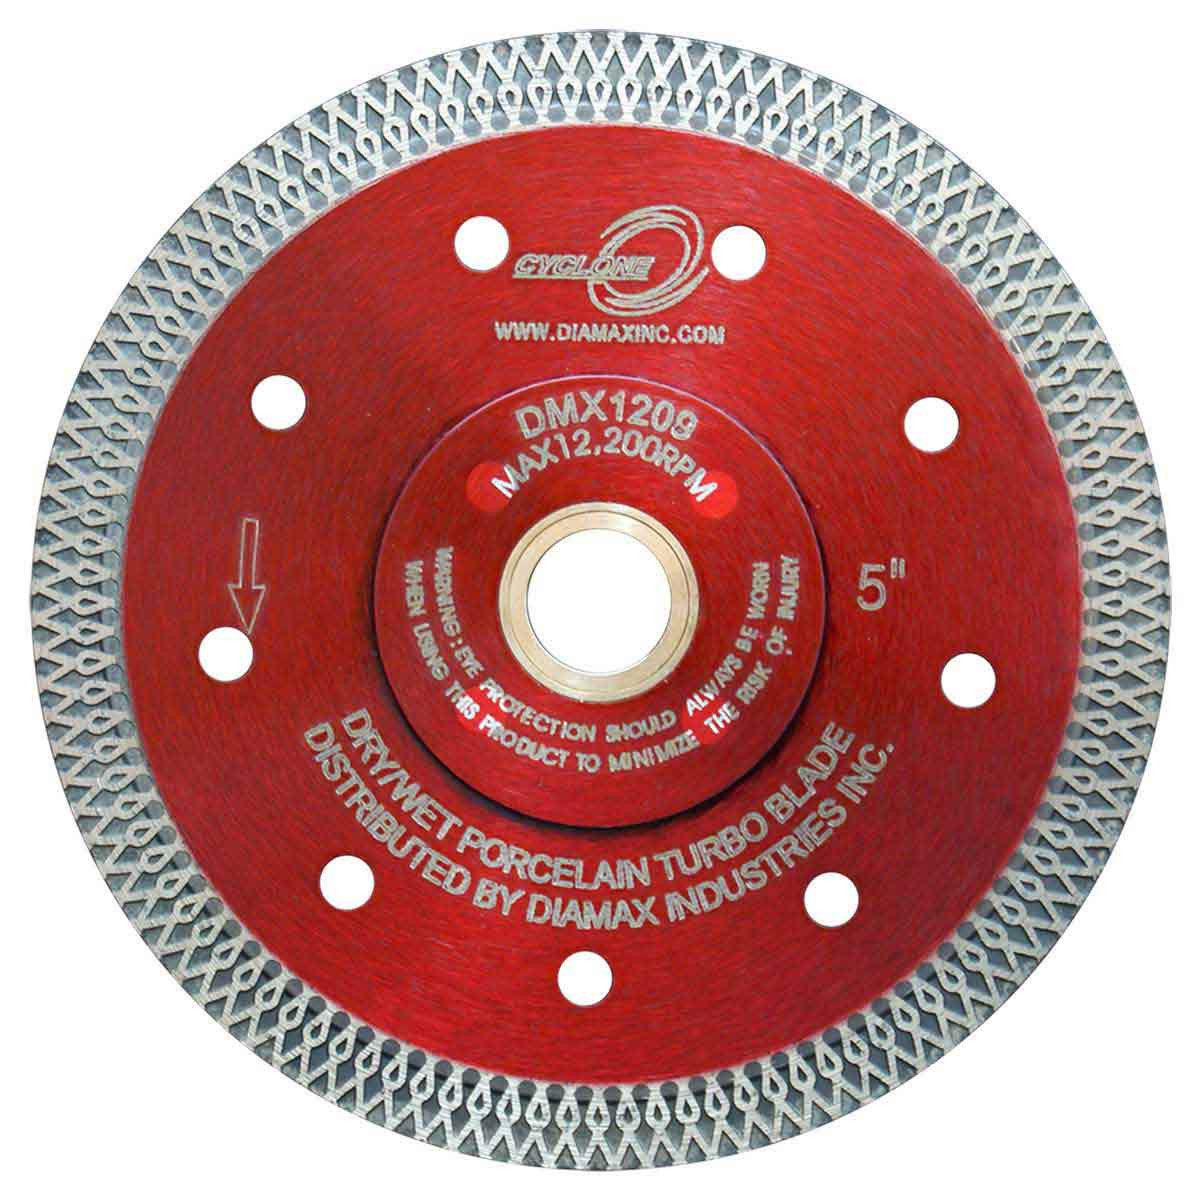 diamax cyclone turbo tile blade